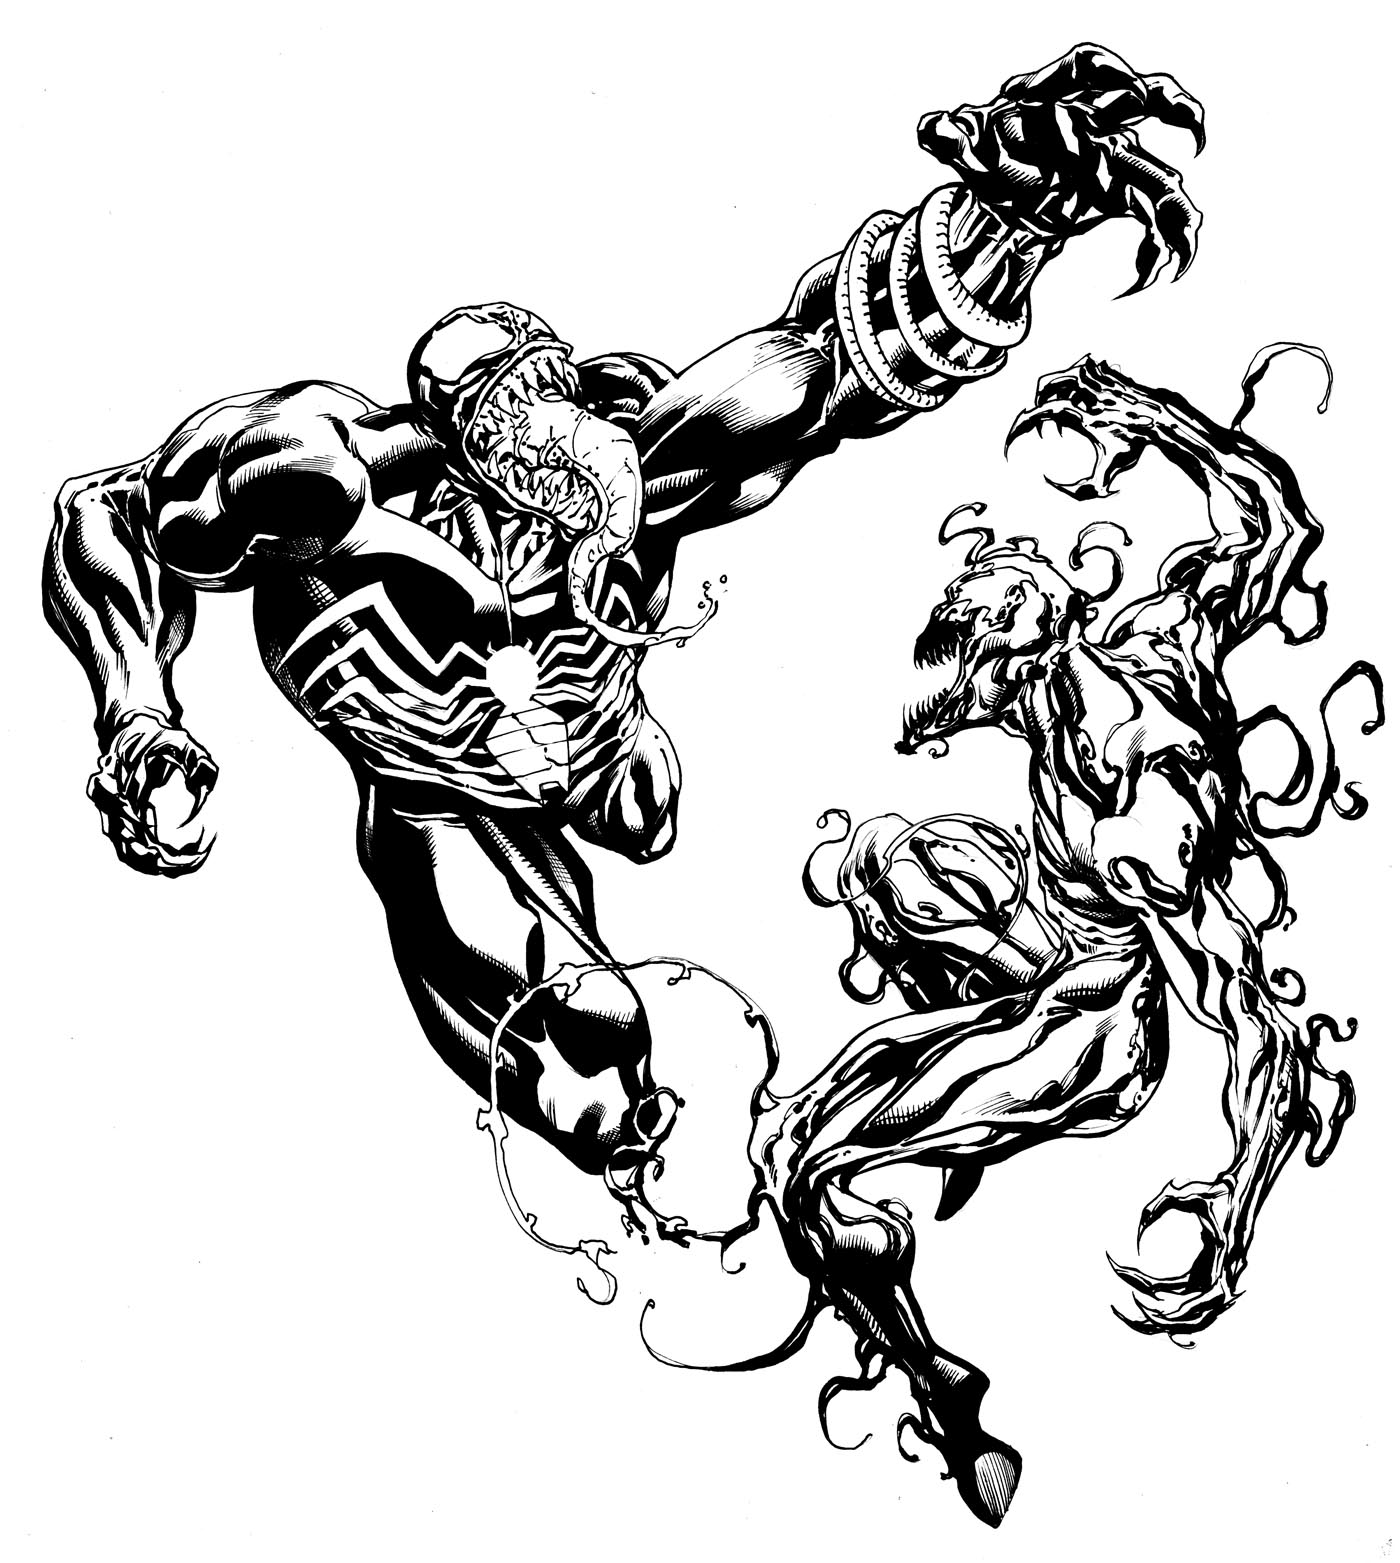 agent venom coloring pages | Agent Venom Coloring Pages To Print Coloring Pages